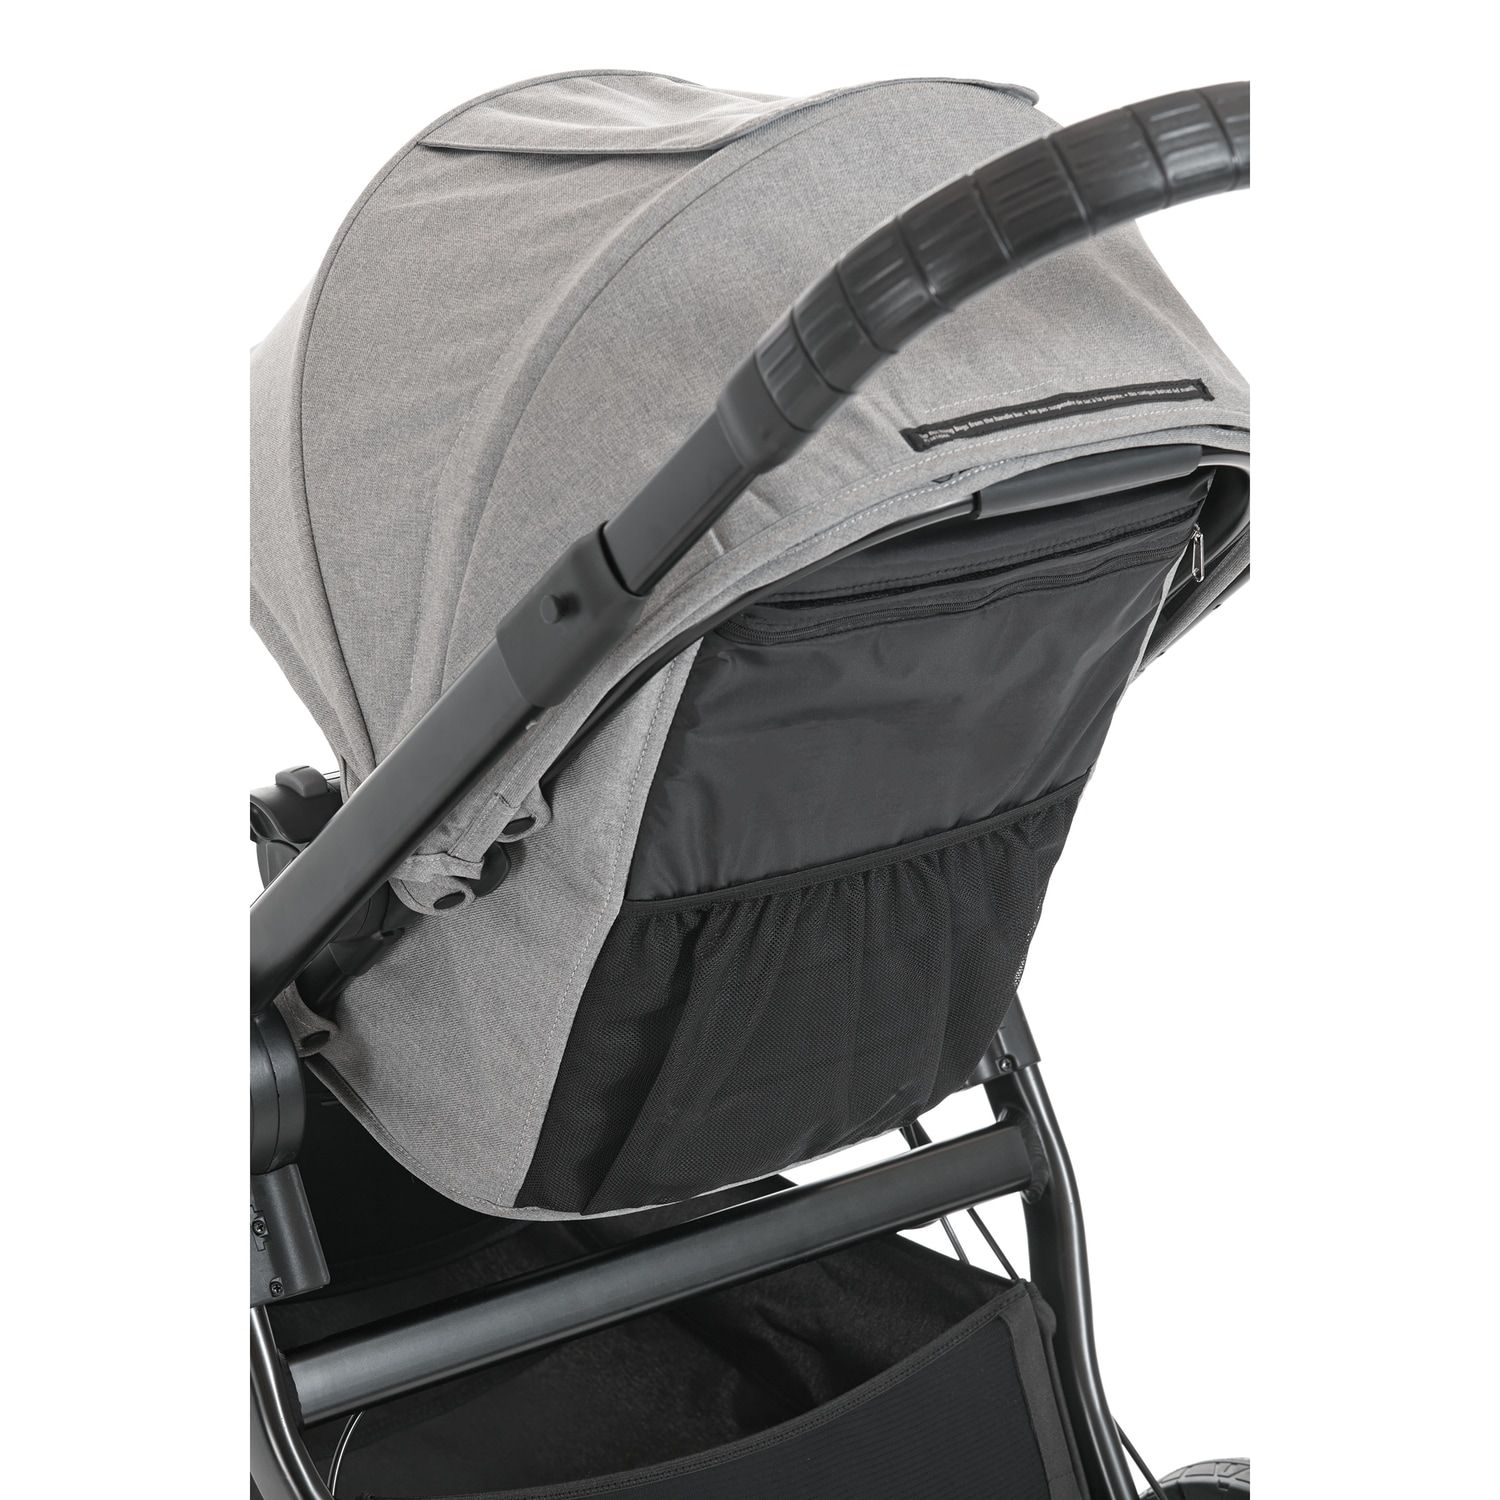 Baby Jogger City Select LUX Stroller in 2019 Baby jogger